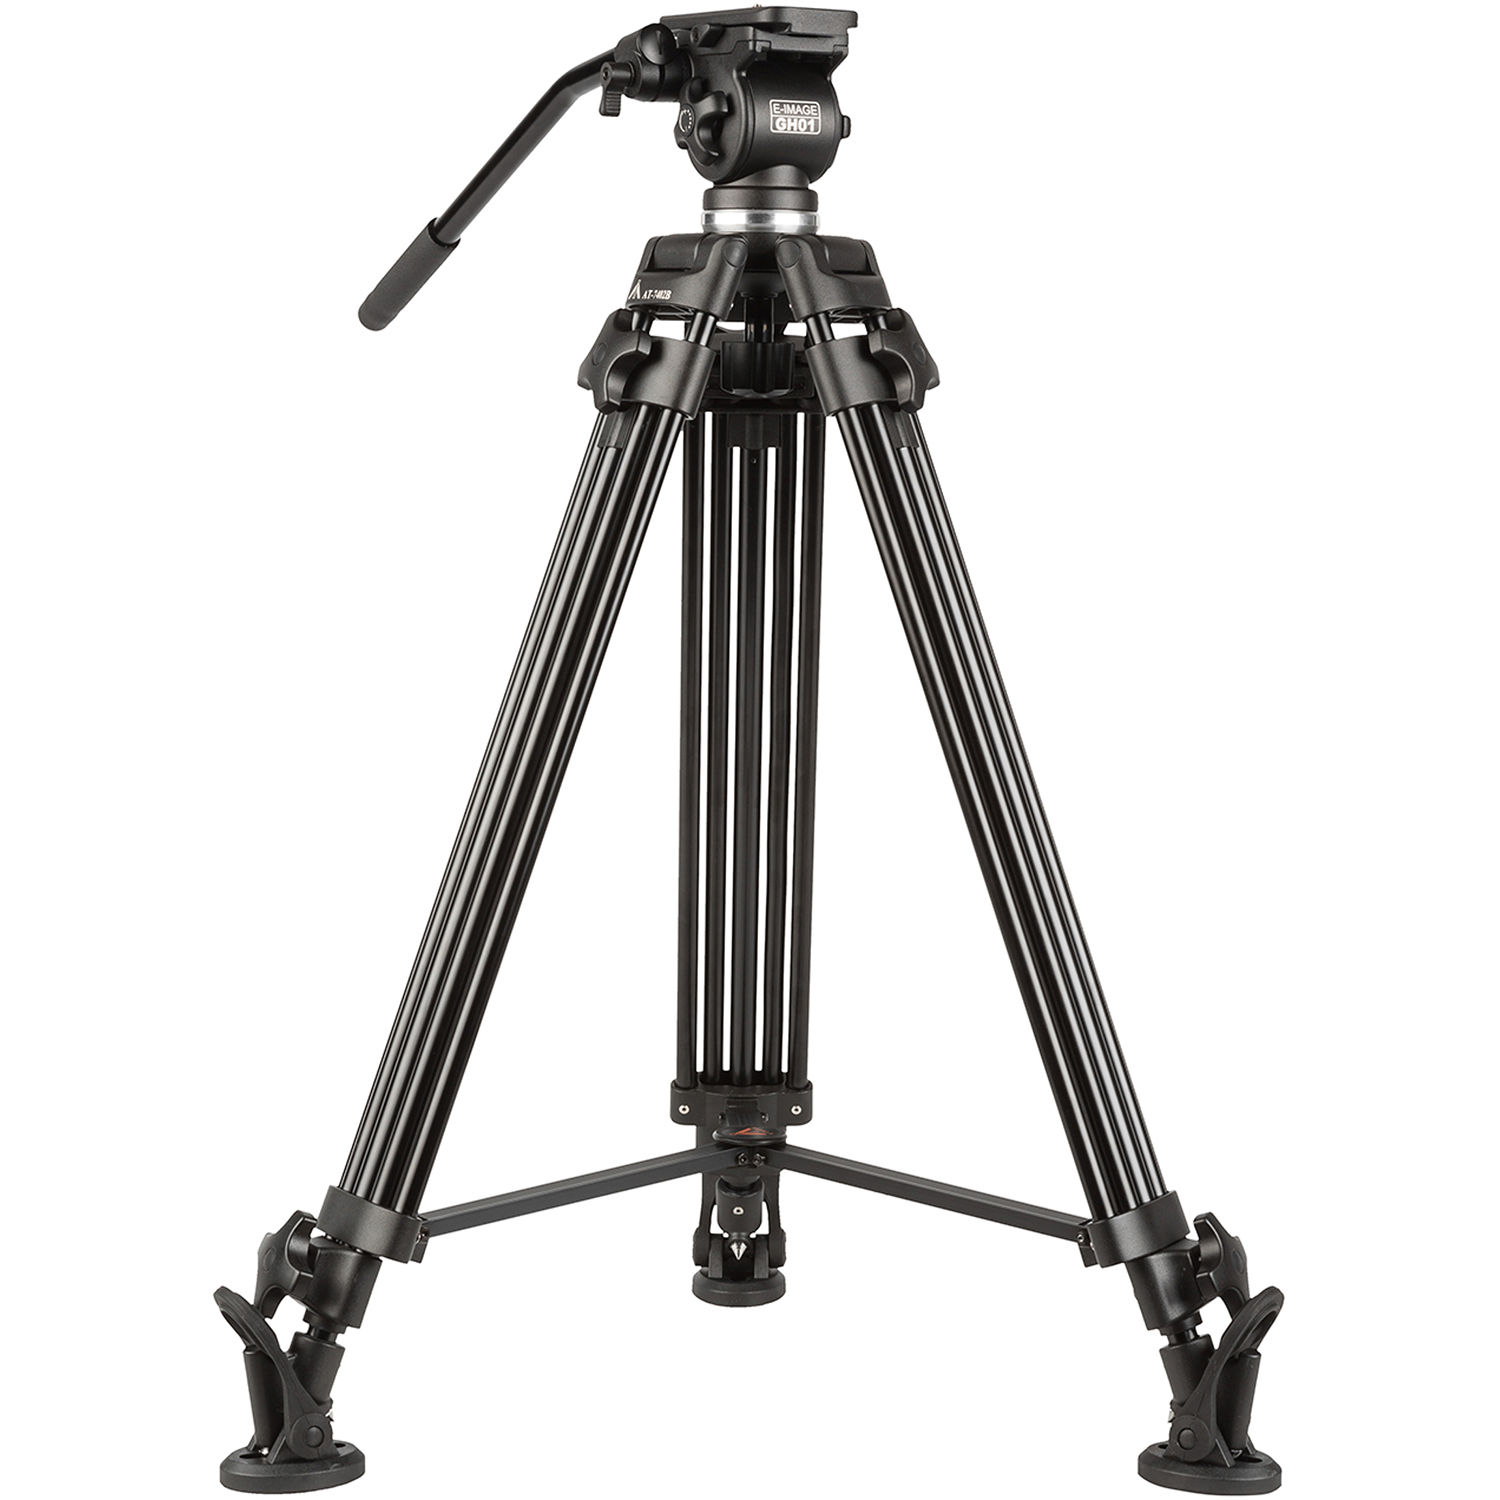 E Image Eg01a2 Two Stage Aluminum Tripod System With Gh01 Eg01a2